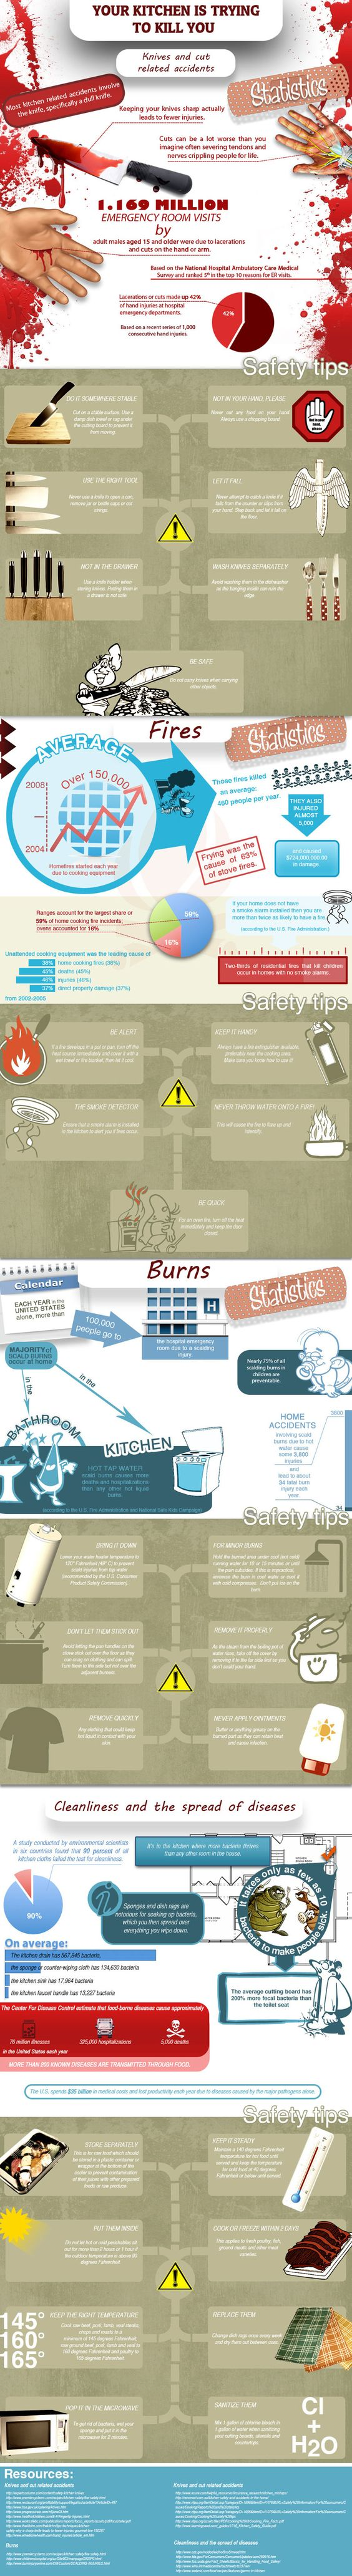 Know the dangers lurking in your kitchen: Infographic ...